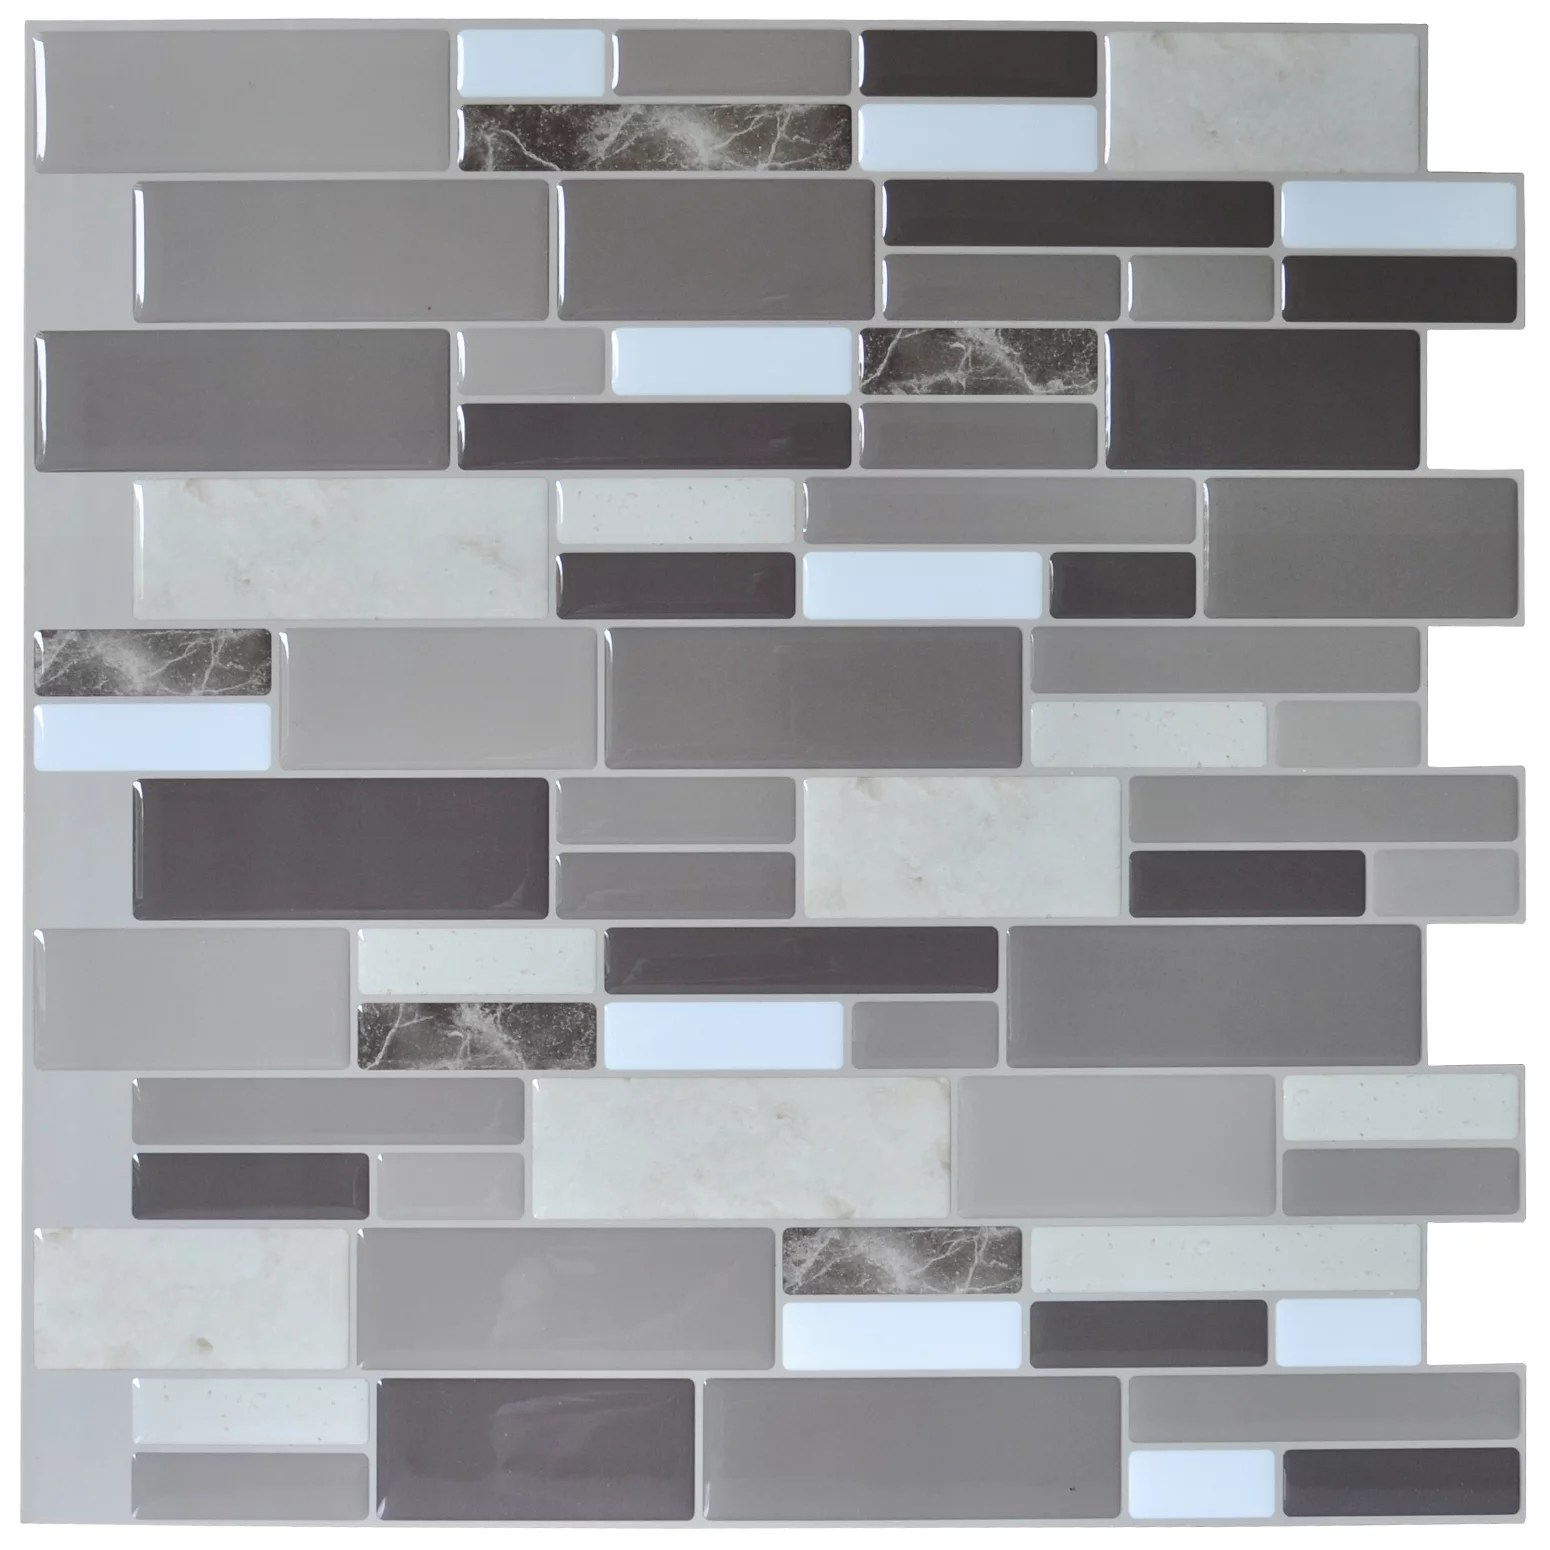 art3d stone gray design 12 in x 12 in peel and stick brick kitchen backsplash wall tile 6 pack